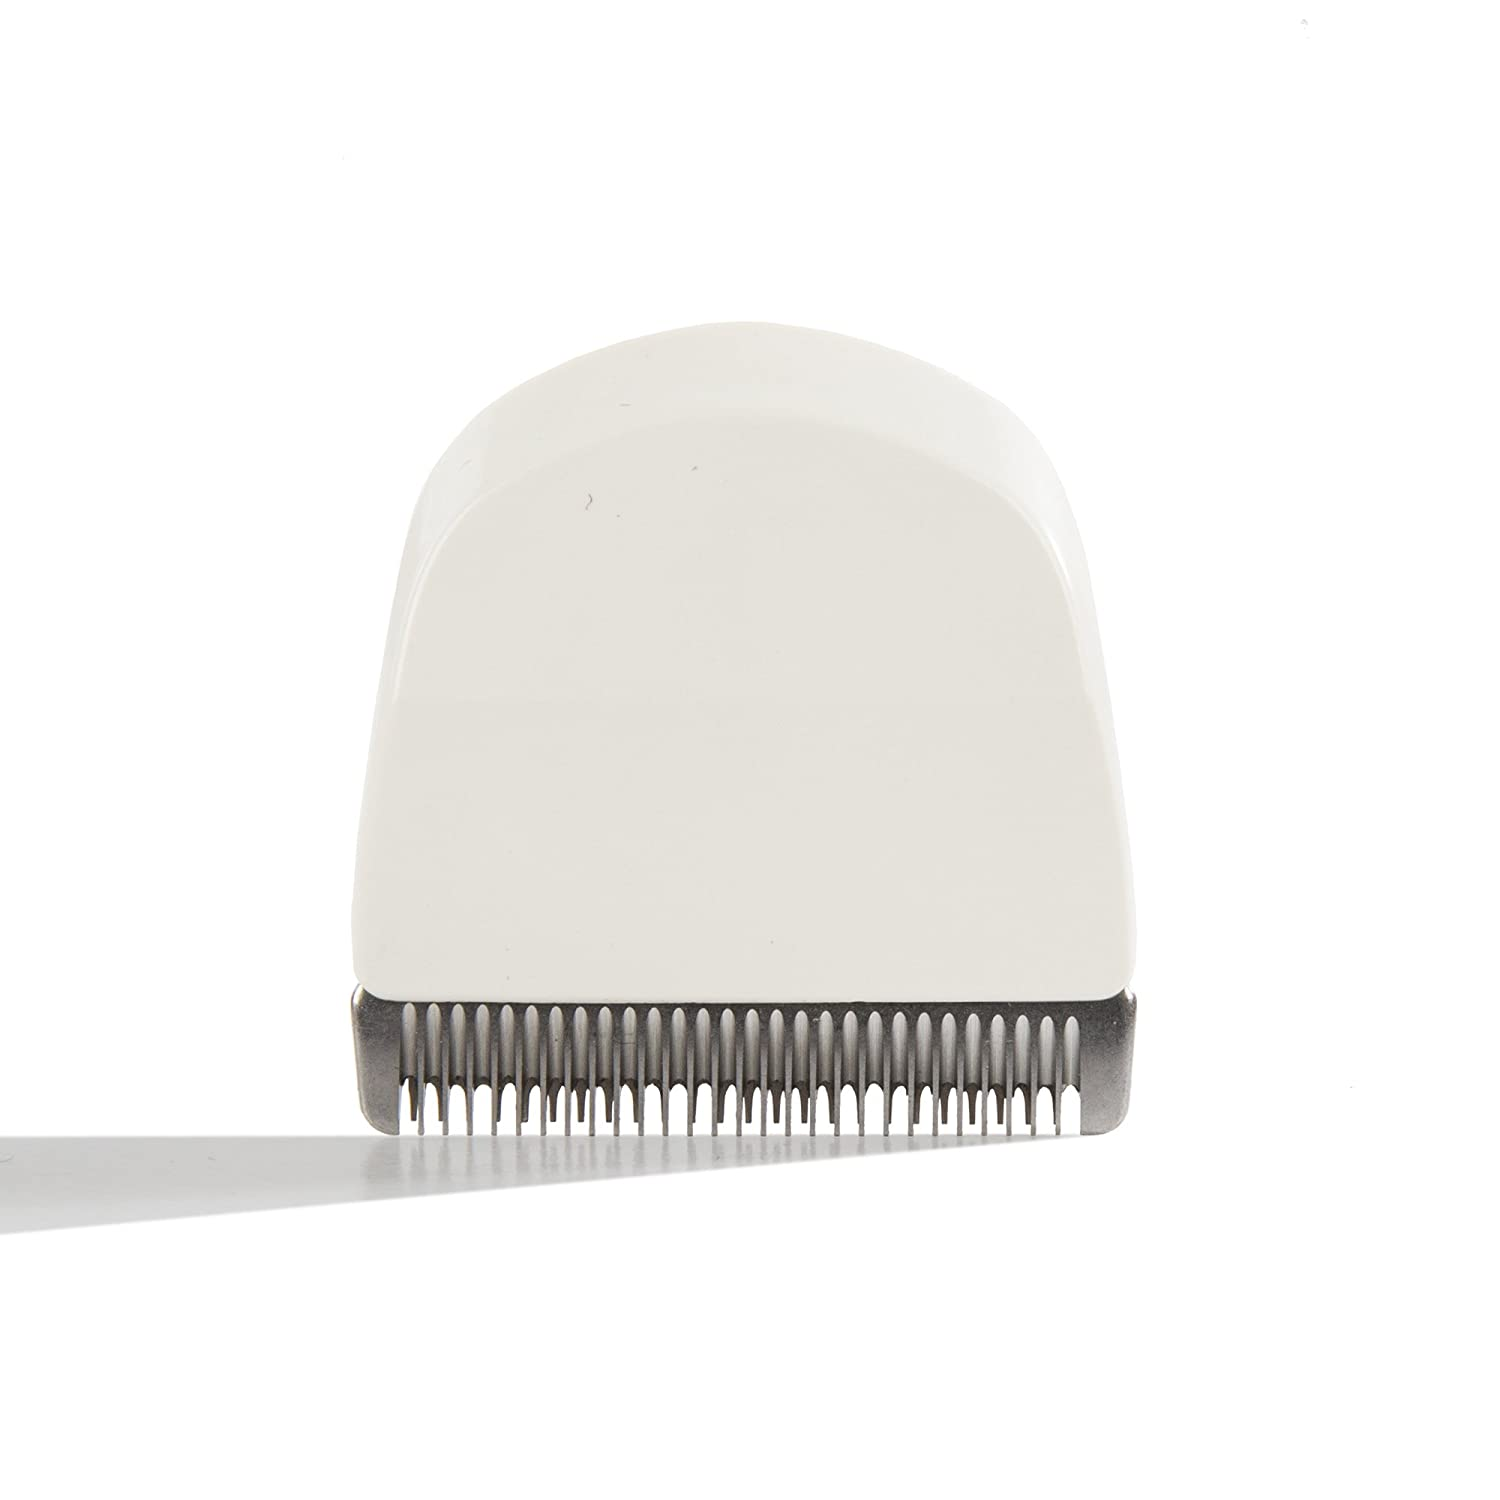 Wahl Professional Peanut Snap On Clipper/Trimmer Blade (White) #2068-300 Peanuts (White) WAHL Pet Products